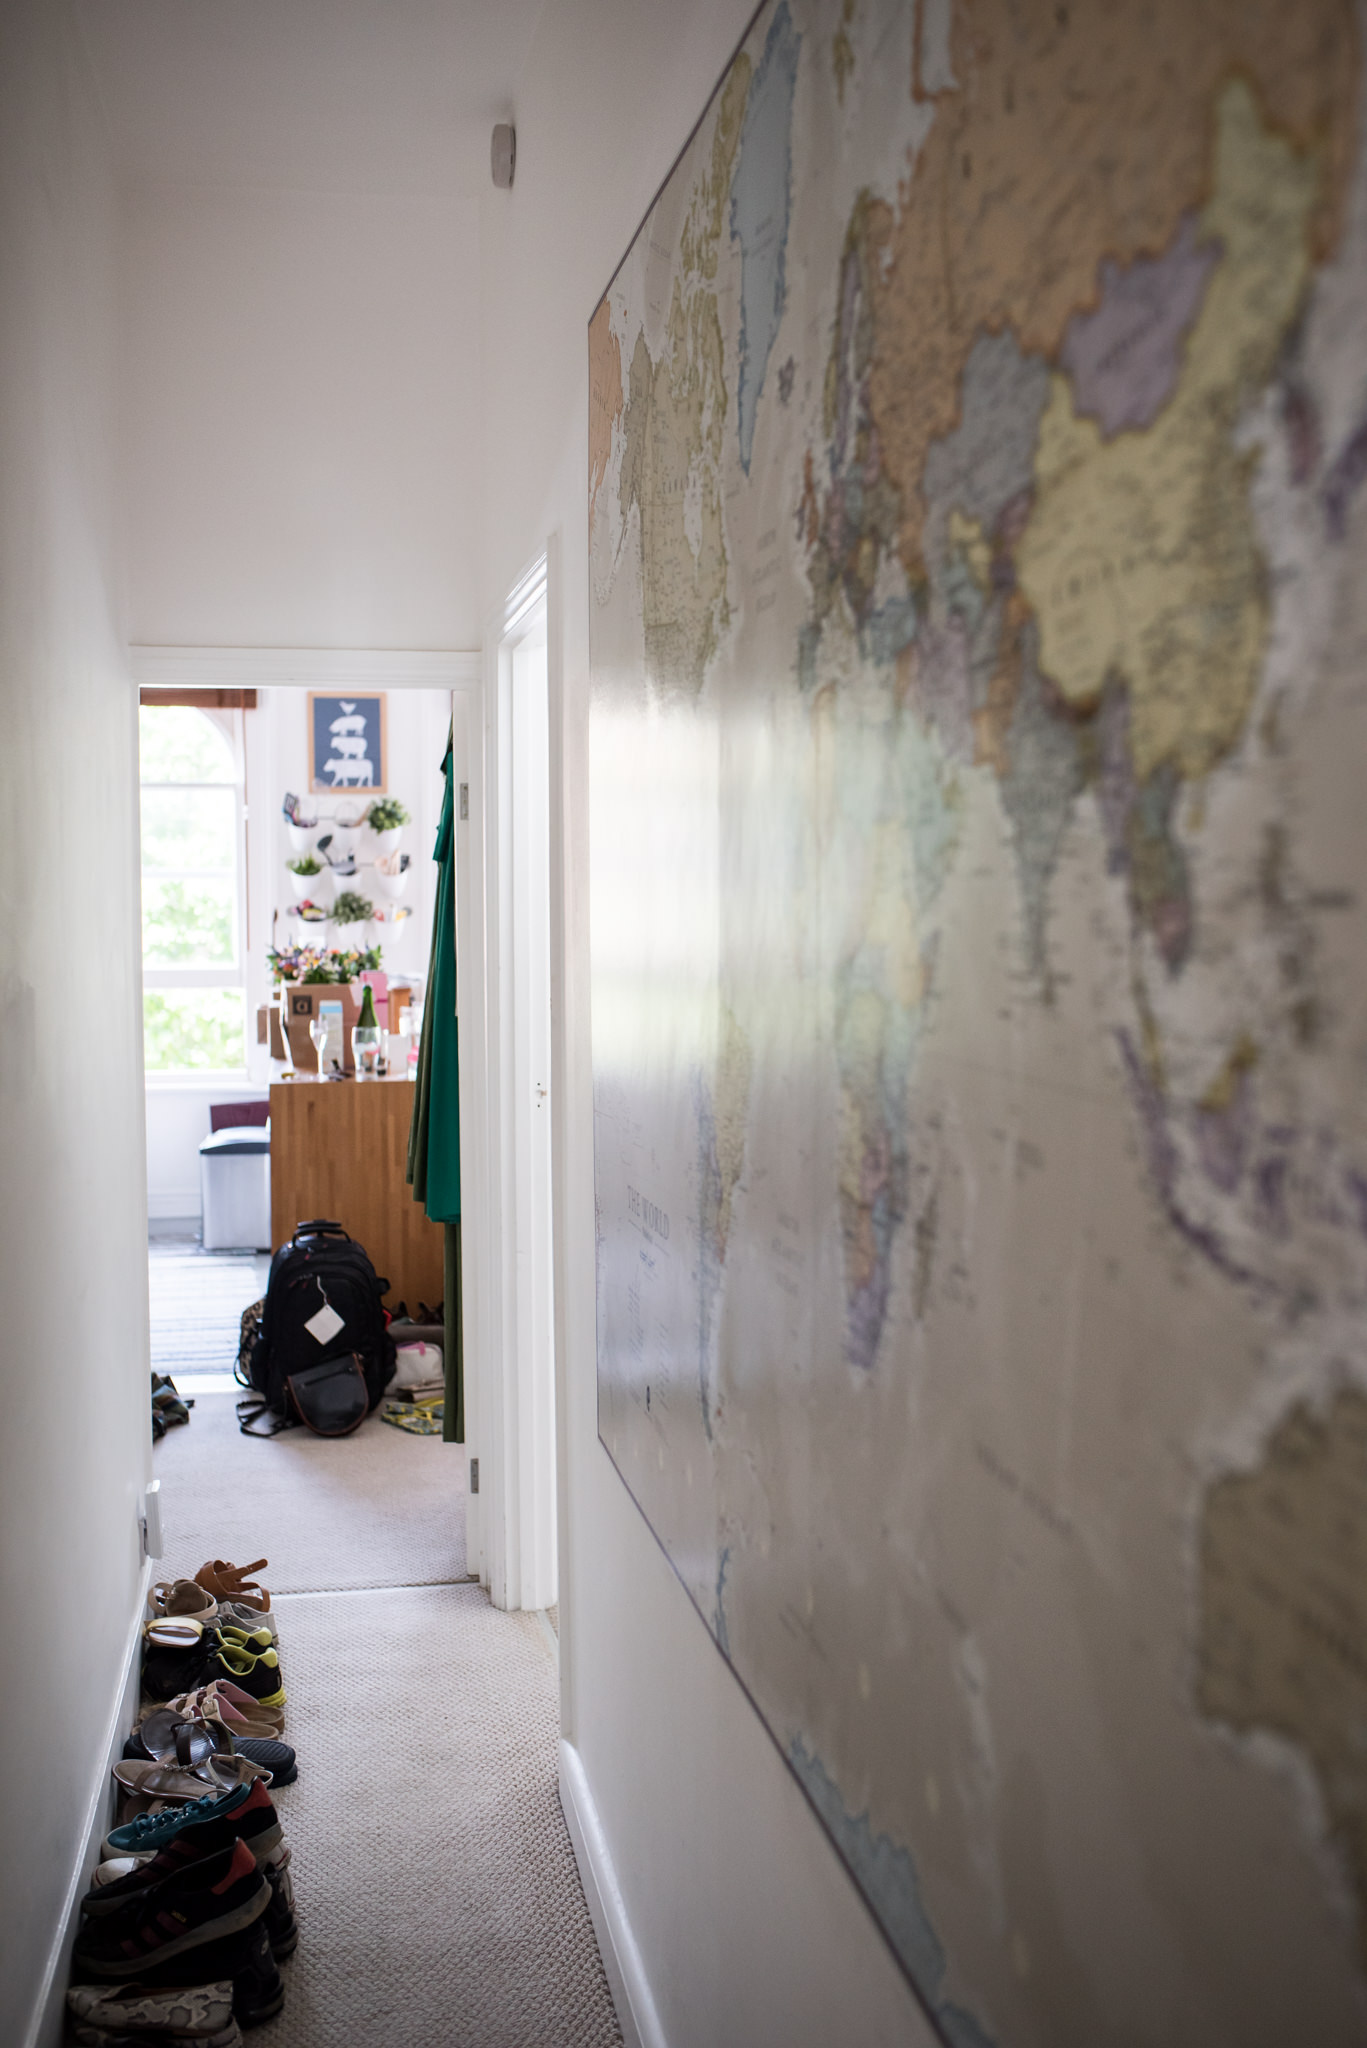 map on the wall of a london flat